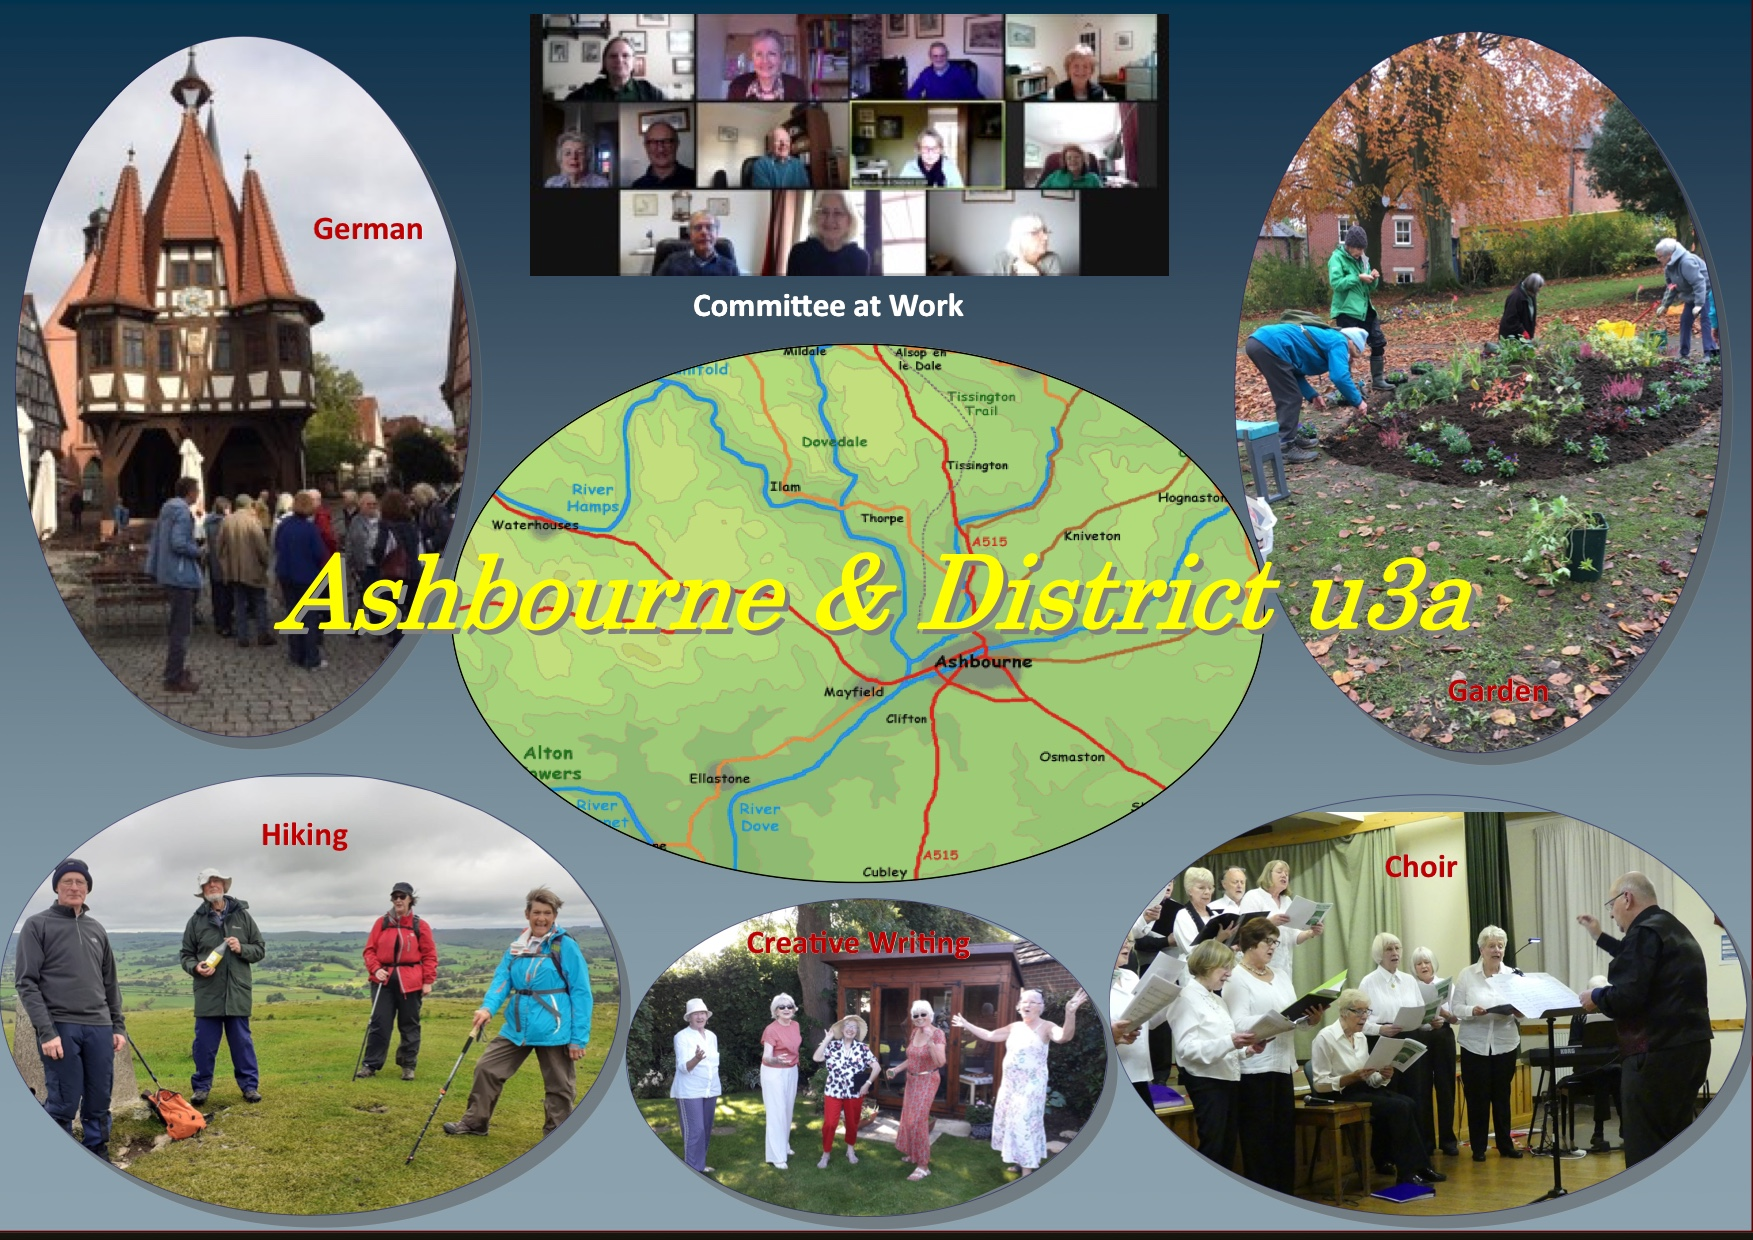 Ashbourne & District u3a